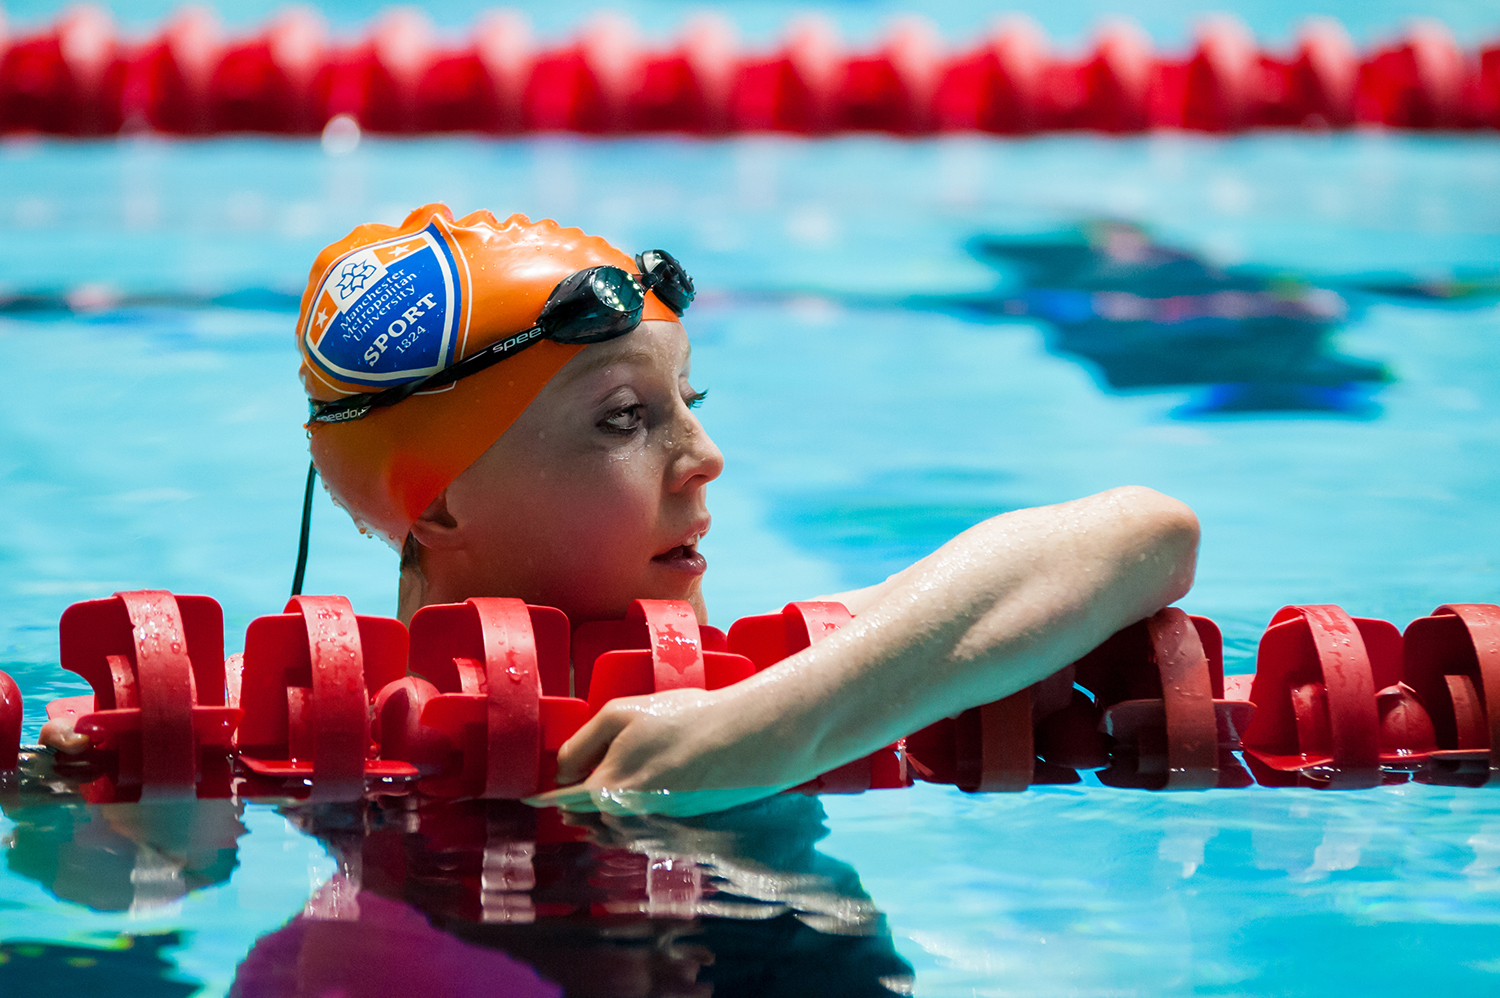 The University's Sport Scholar elite programme supports elite swimmers and para swimmers